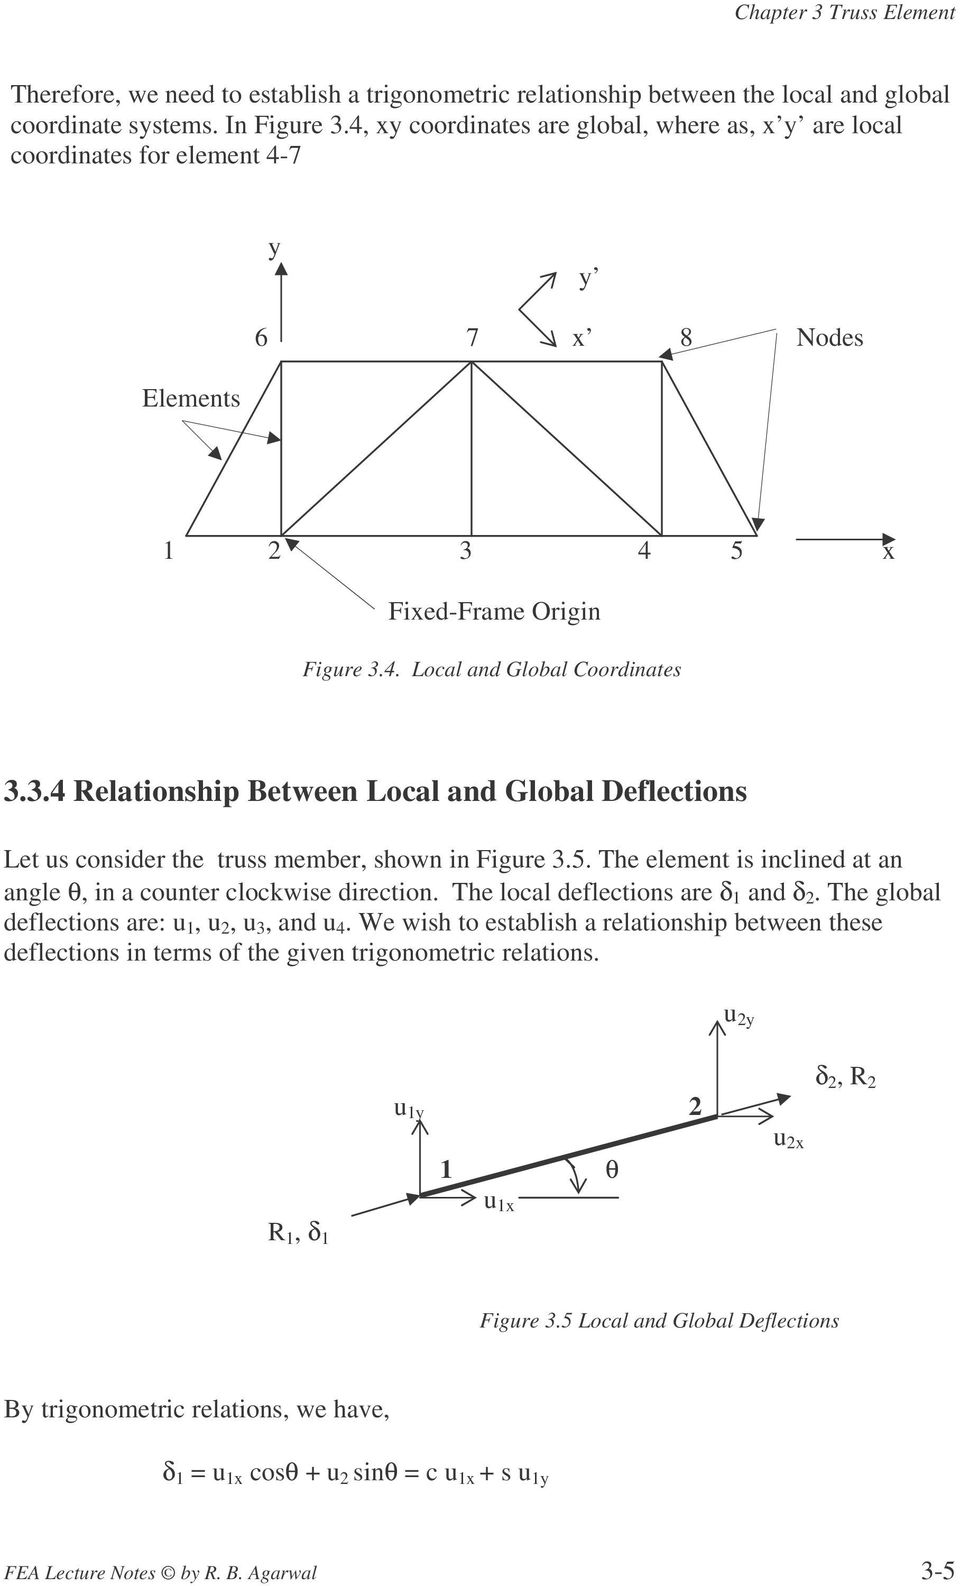 4 5 x Fixed-Frame Origin Figure 3.4. Local and Global Coordinates 3.3.4 Relationship Between Local and Global Deflections Let us consider the truss member, shown in Figure 3.5. The element is inclined at an angle θ, in a counter clockwise direction.